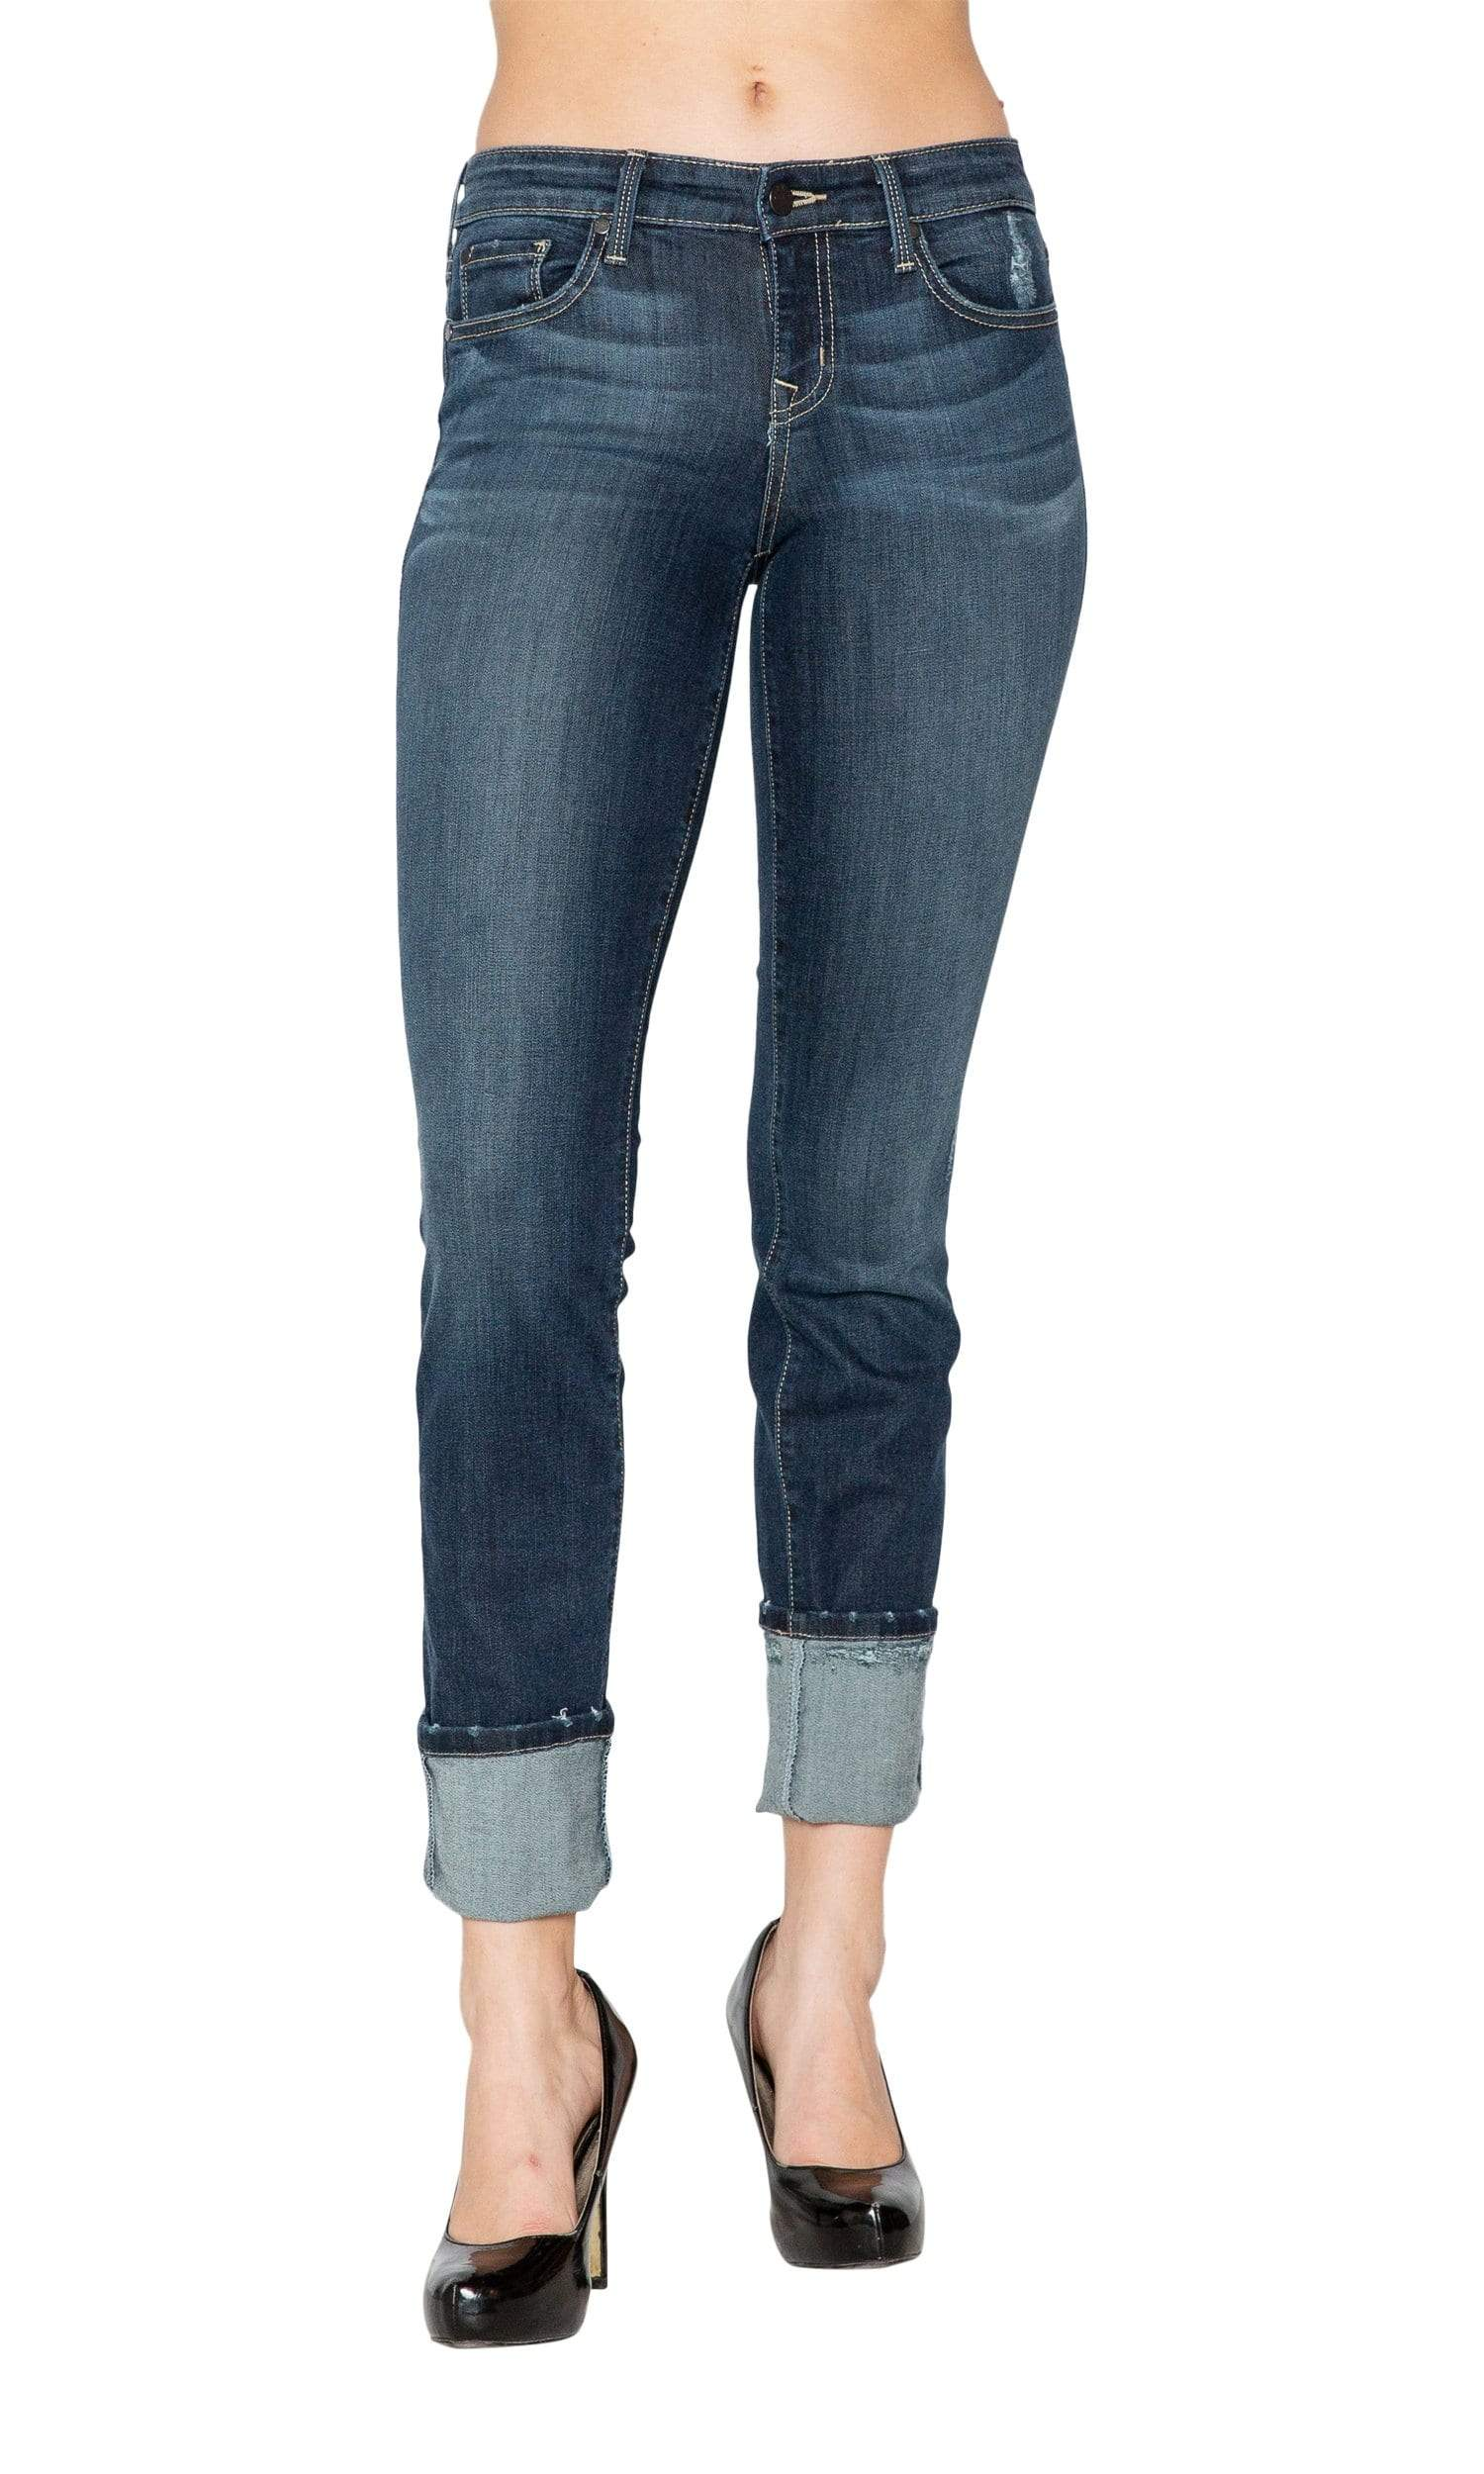 Level 99 Lily Skinny Straight Denim - Ridgewood